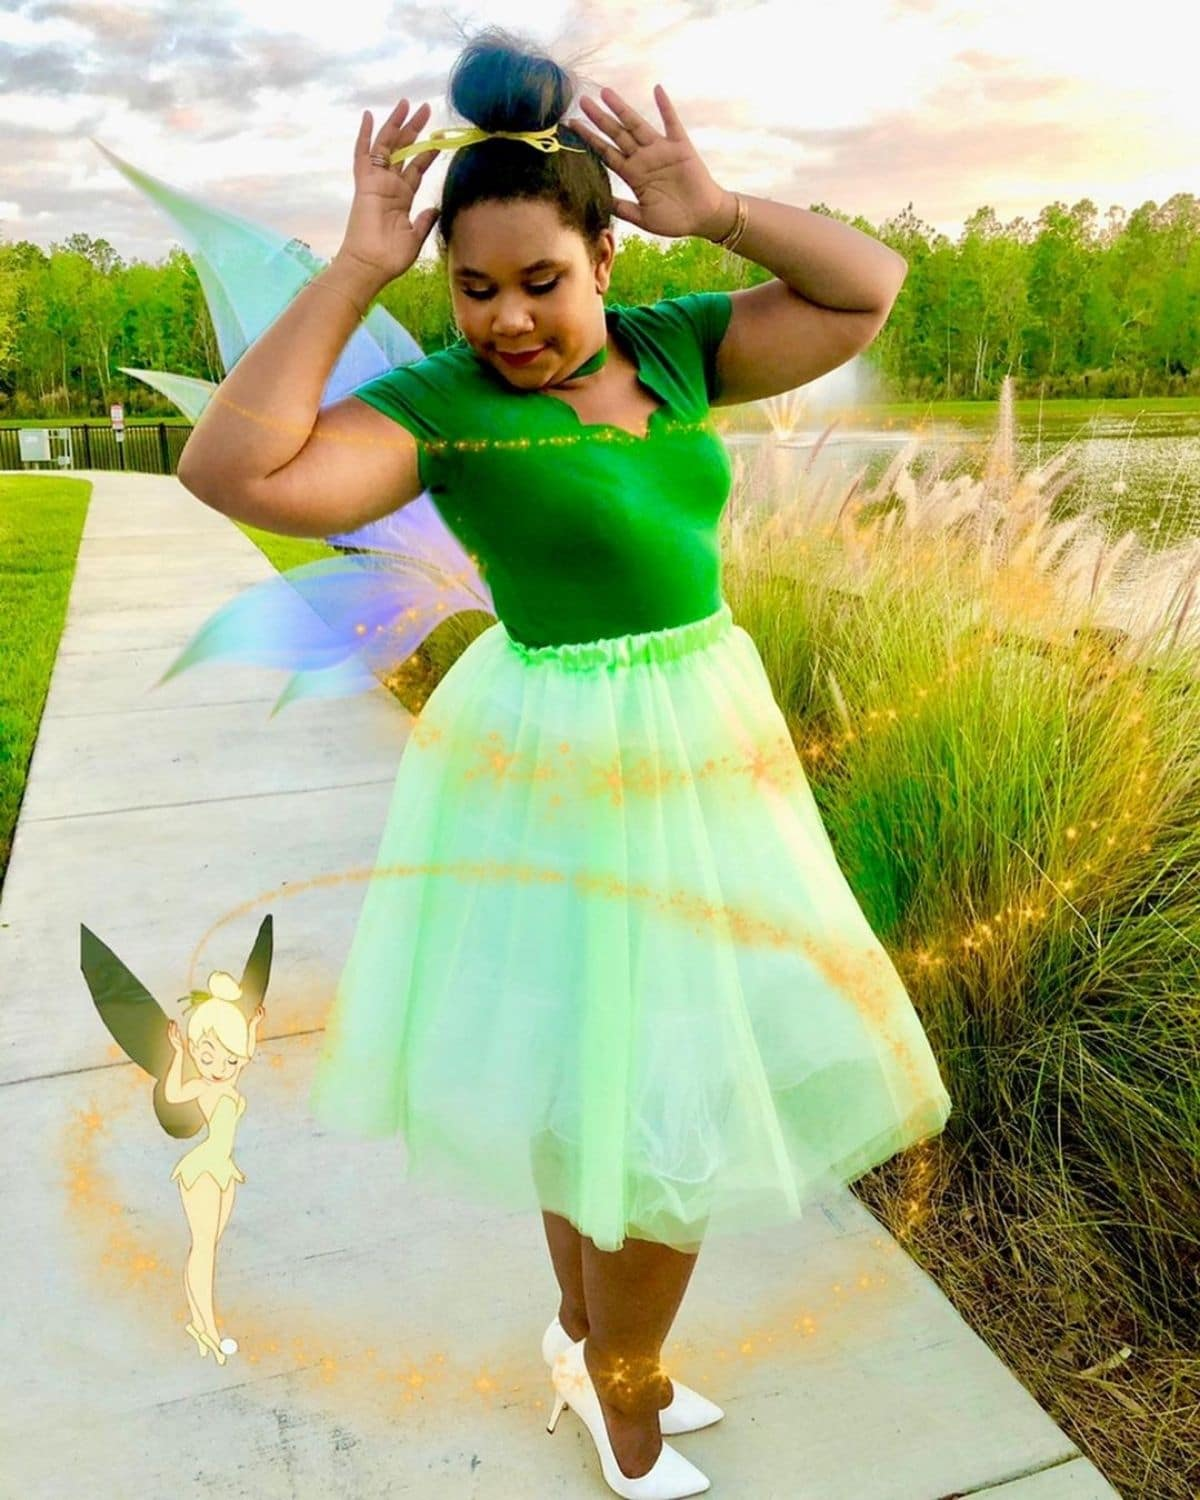 modest Tinkerbell costume